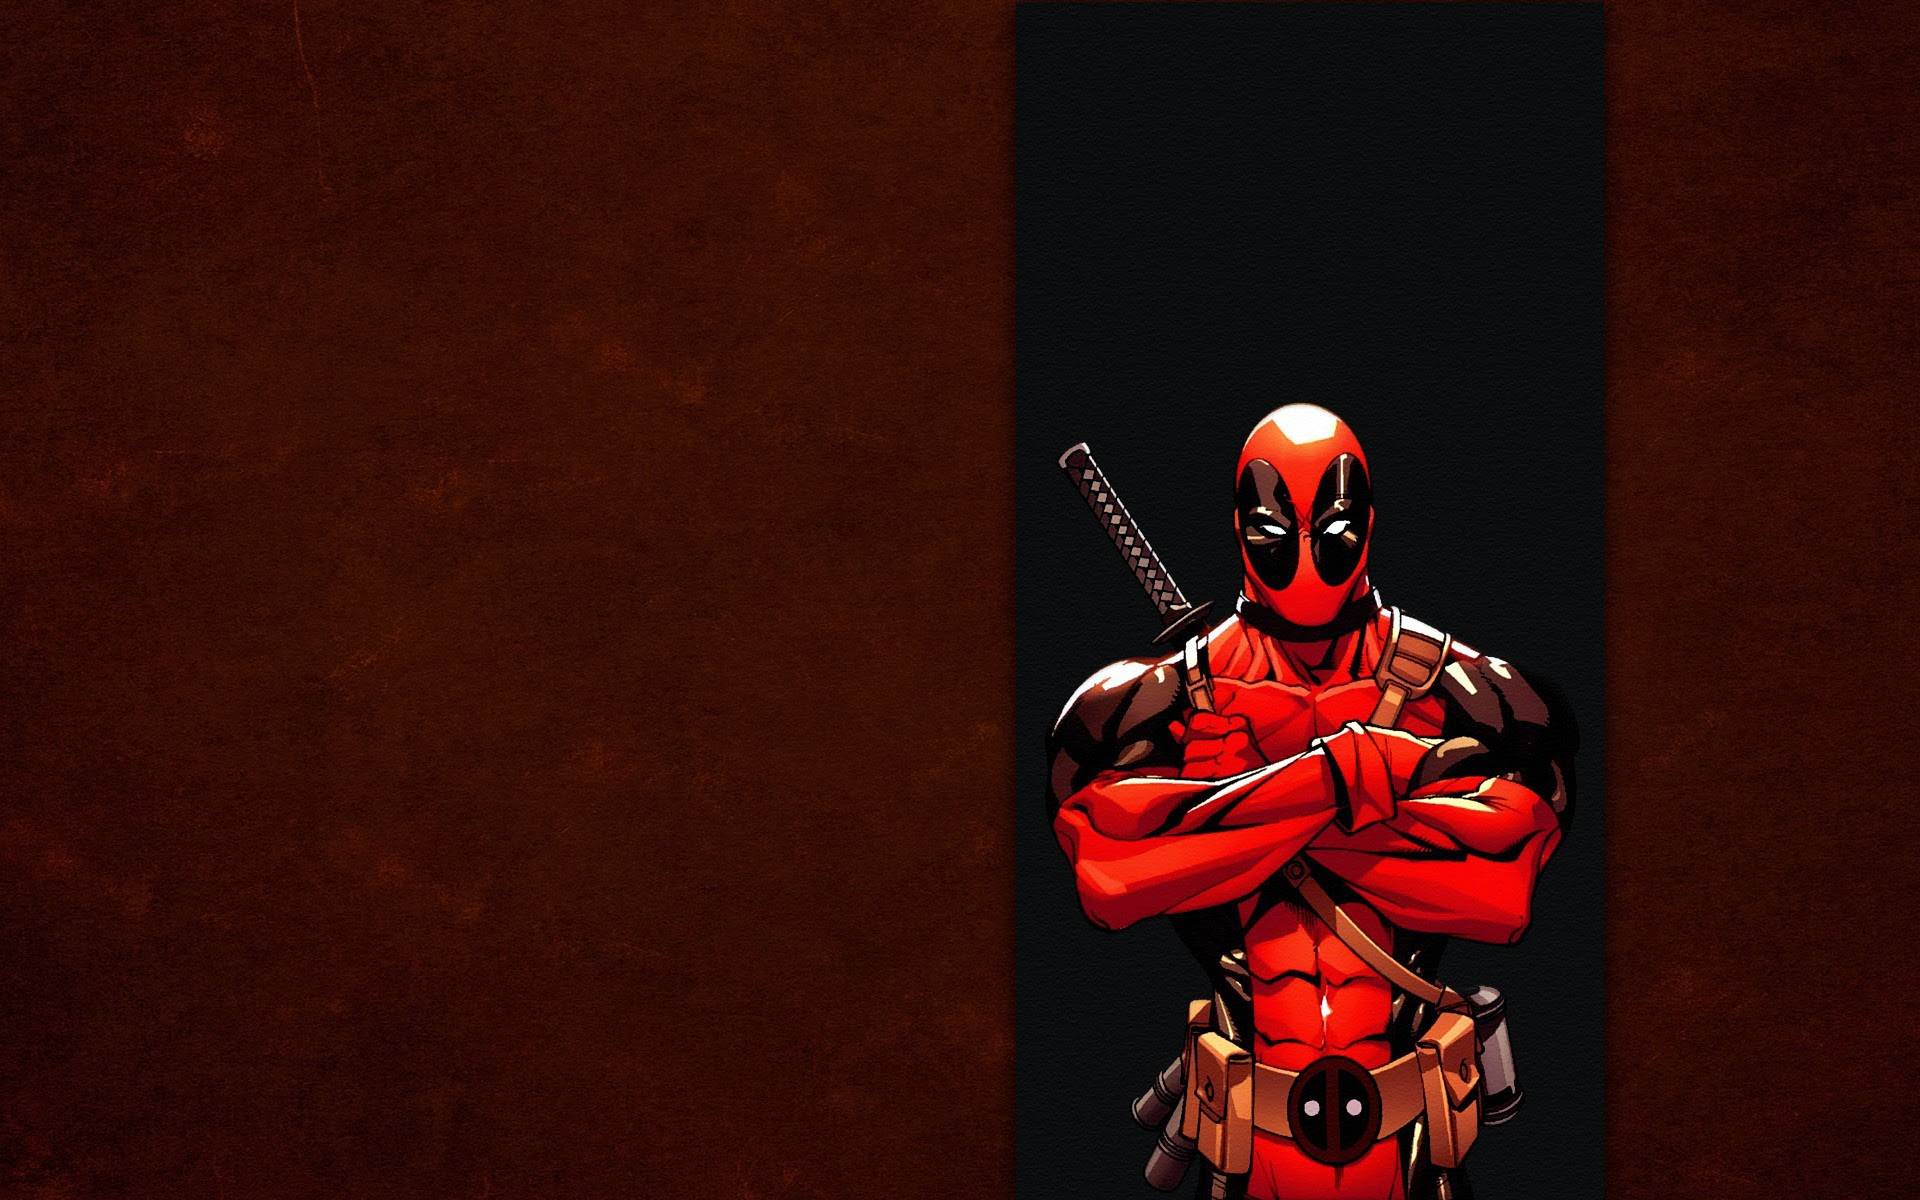 Deadpool Wallpaper Hd Widescreens Resolution Deadpool Wallpaper Hd 1920x1200